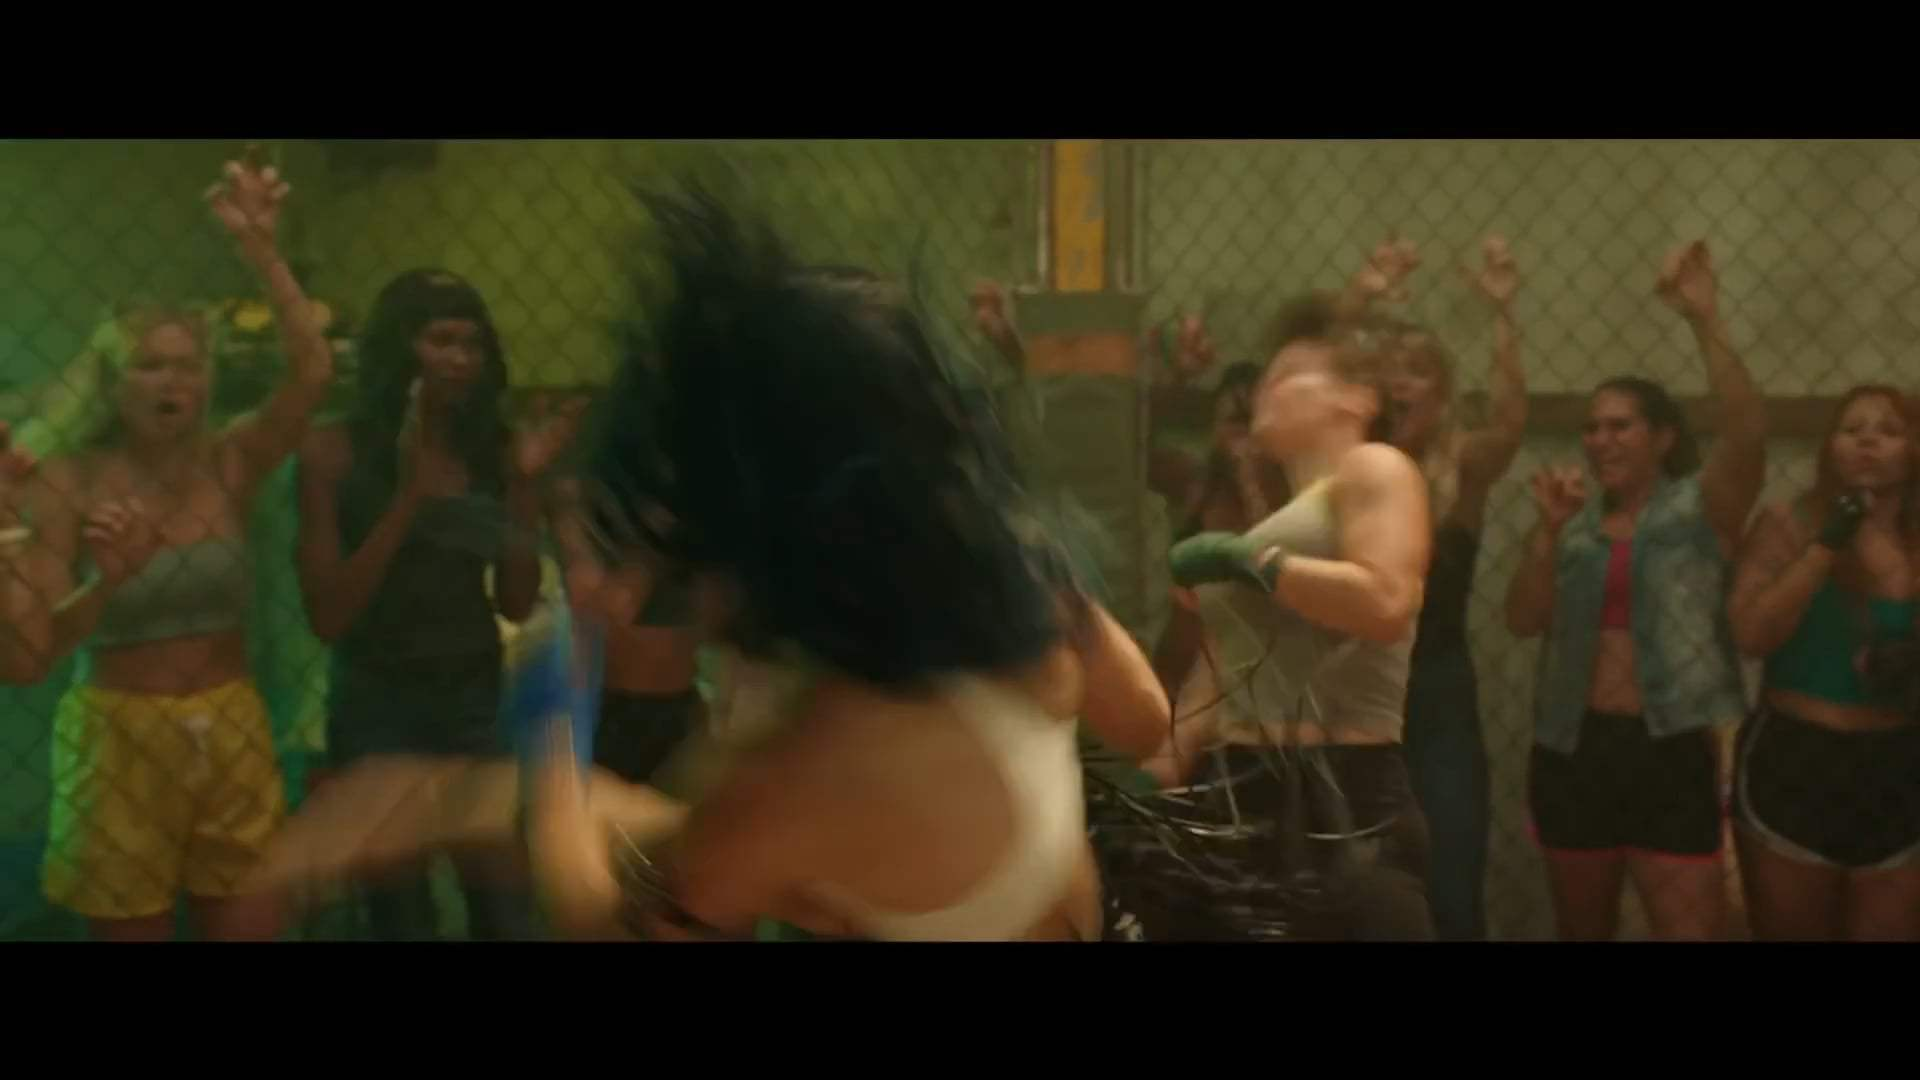 Chick Fight Trailer (2020) Screen Capture #4